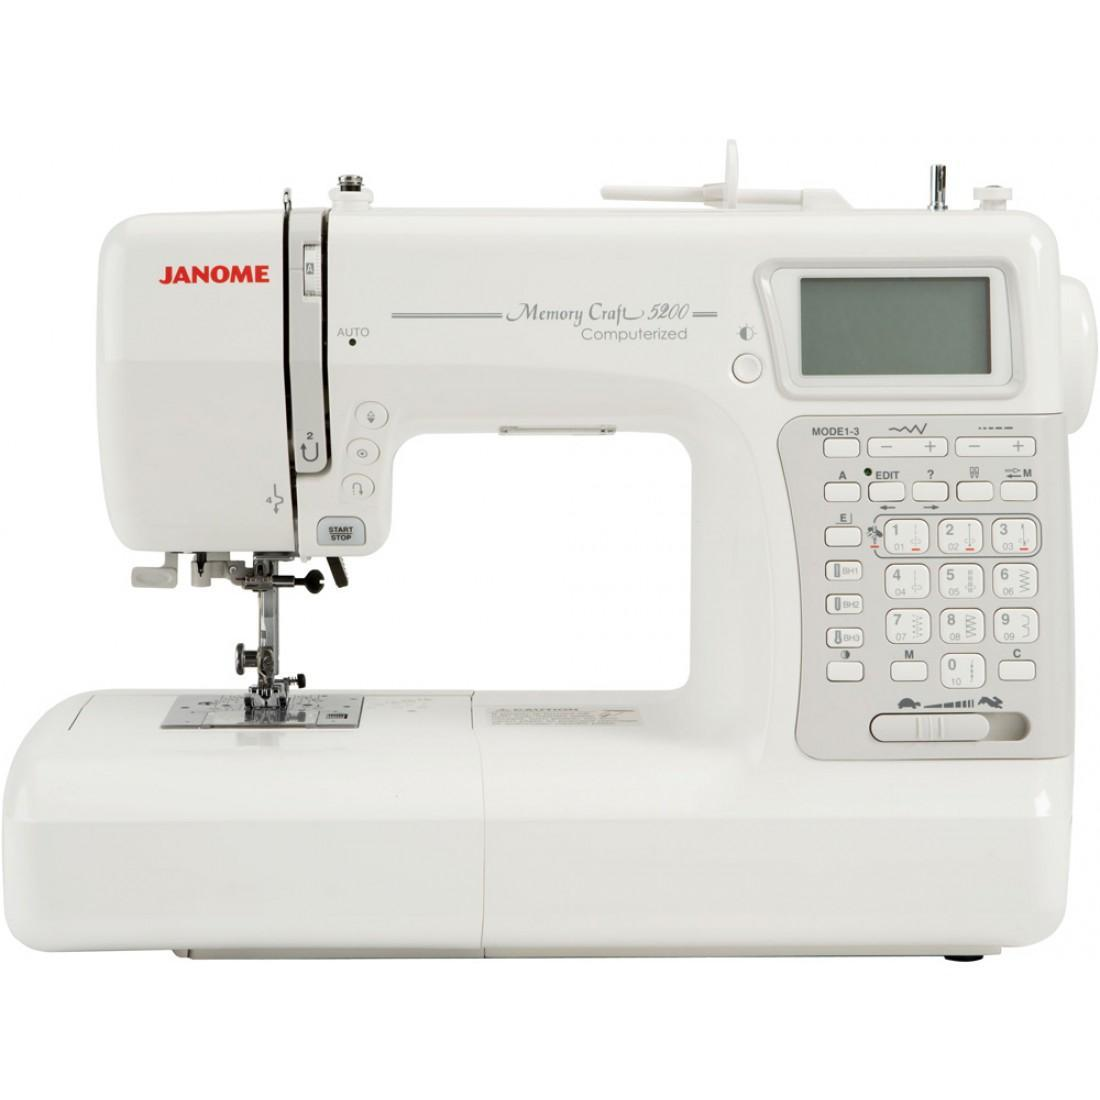 Janome Memory Craft 5200 HC, White швейная машина